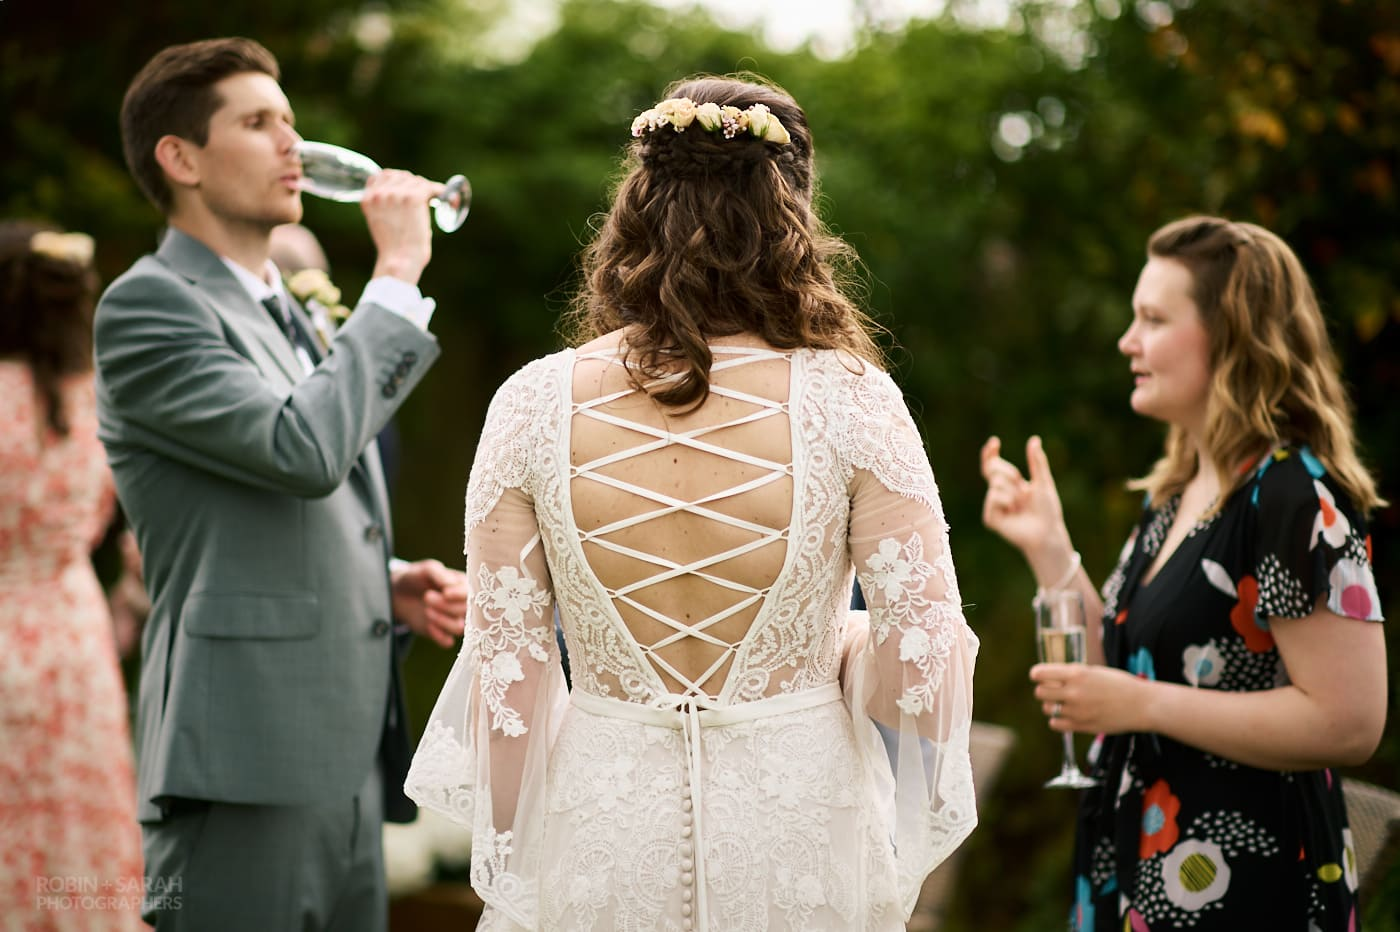 Back of bride's wedding dress on show as she chats to guests